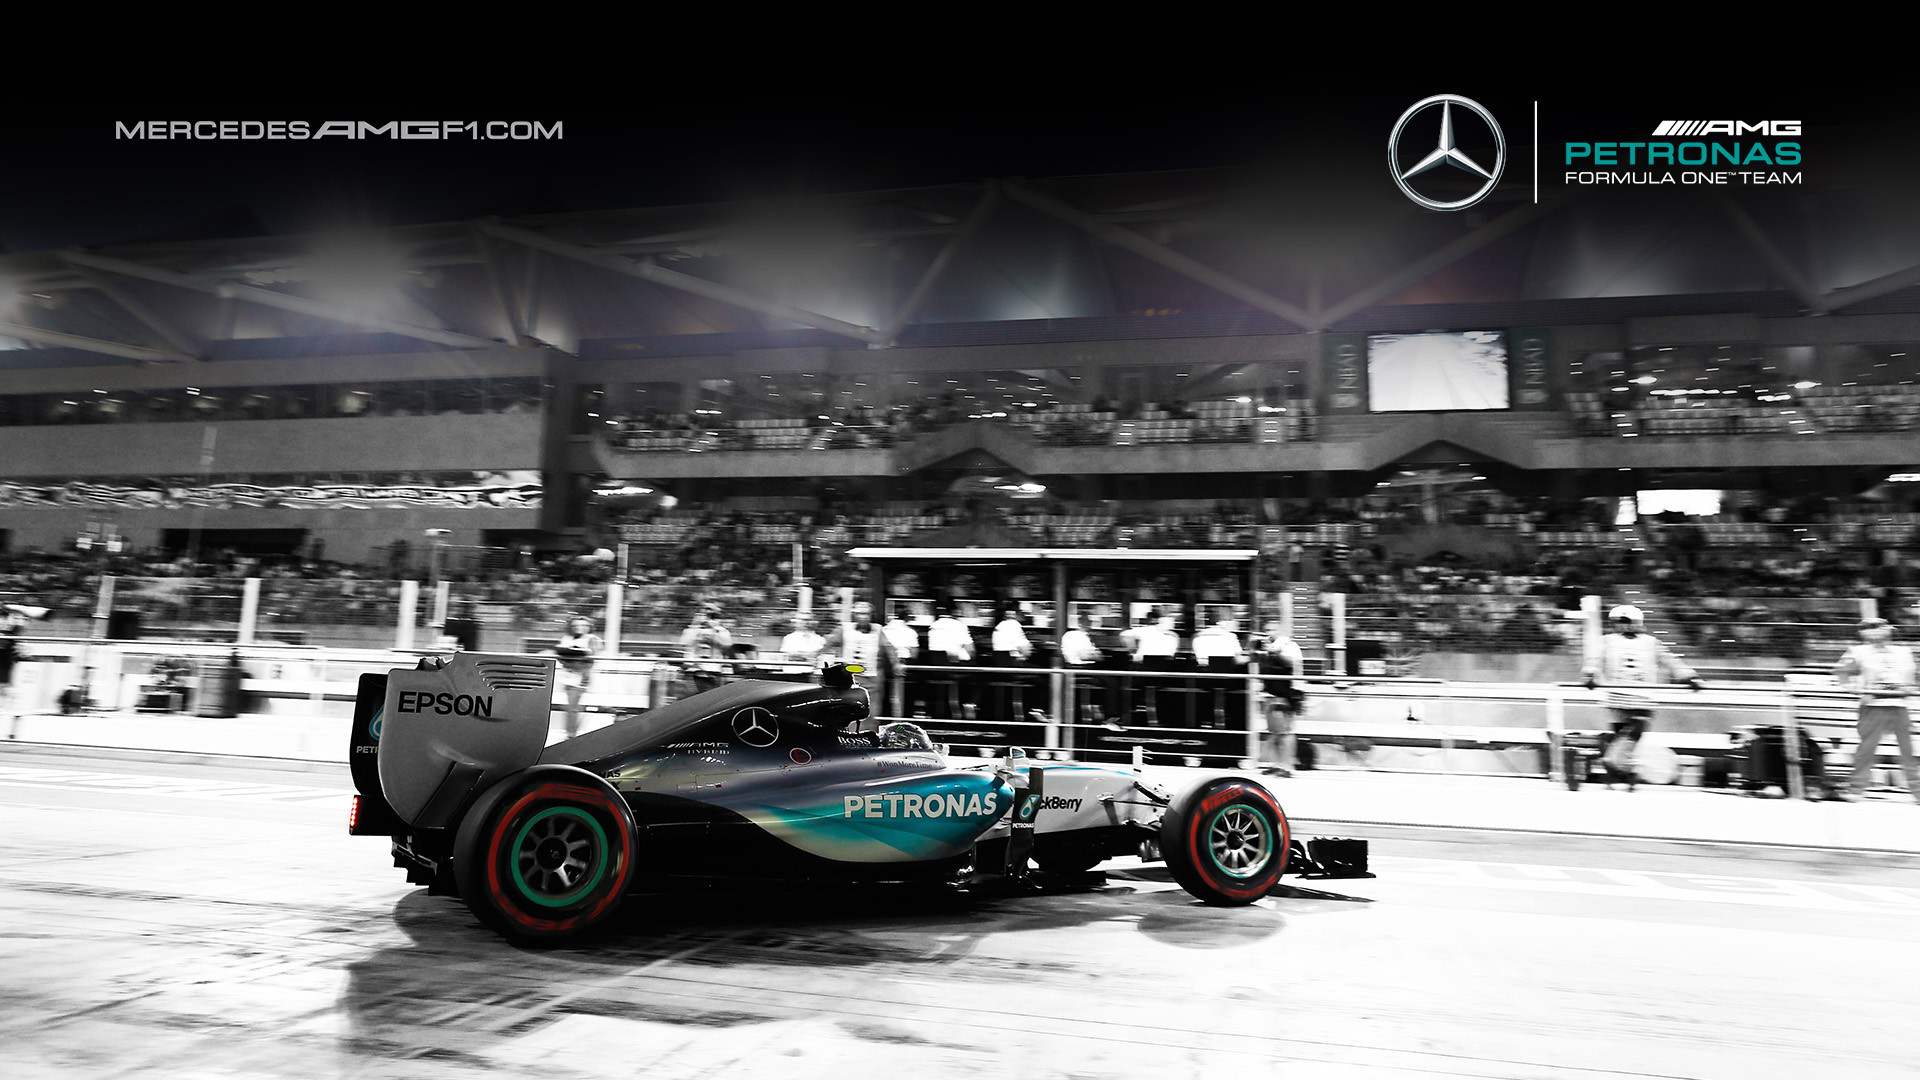 Back to Story: VIDEO: Inside a Mercedes AMG F1 Hybrid Power Unit